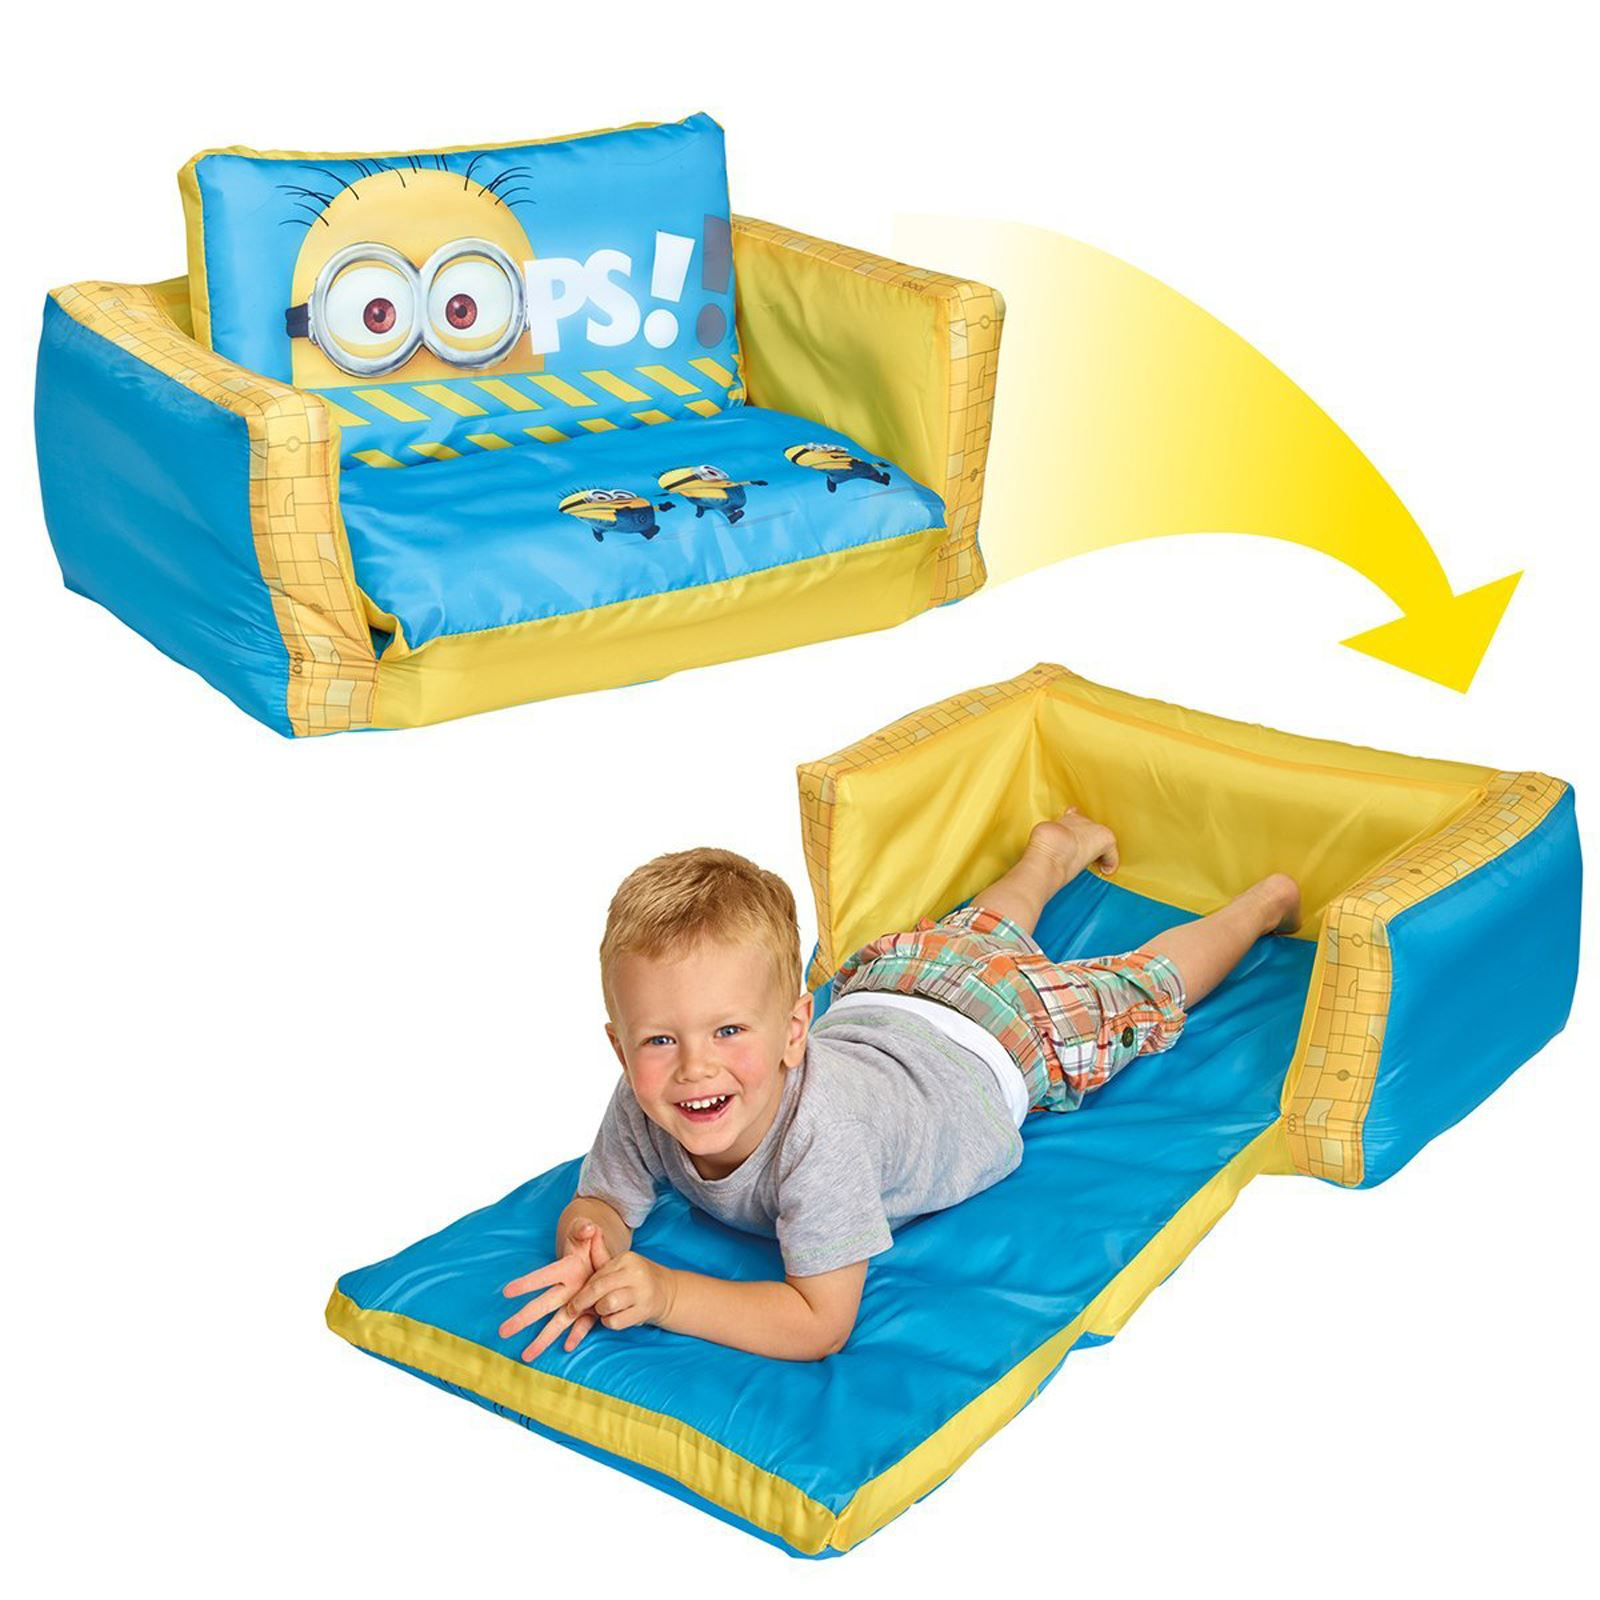 inflatable sofa bed the range white microfiber sectional flip out kids room new minions